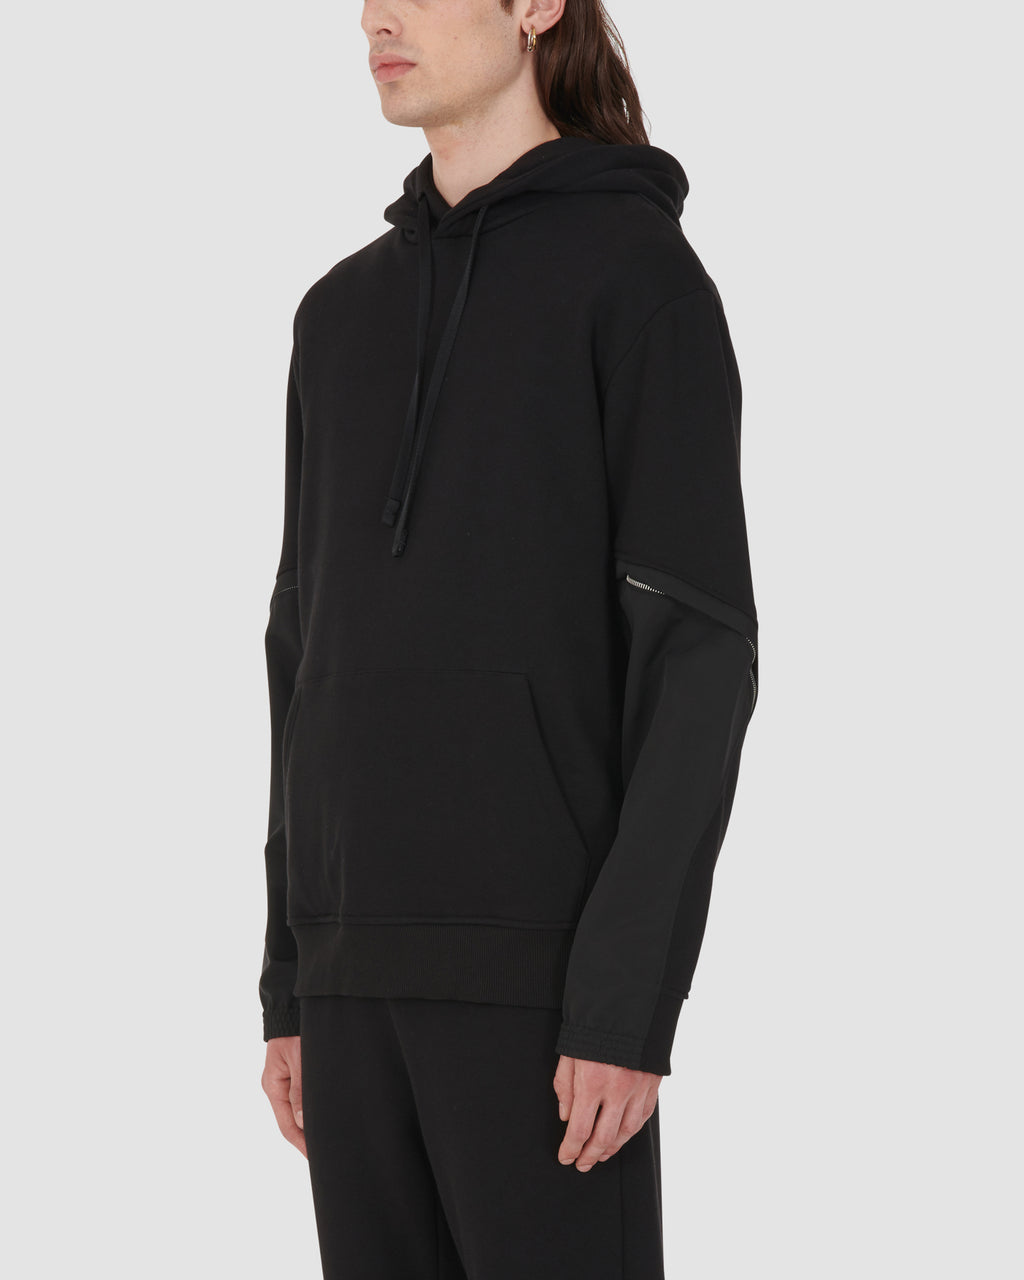 1017 ALYX 9SM | TWISTED HOODIE | Sweatshirt | BLACK, Google Shopping, Man, MEN, S20, SS20, Sweatshirts